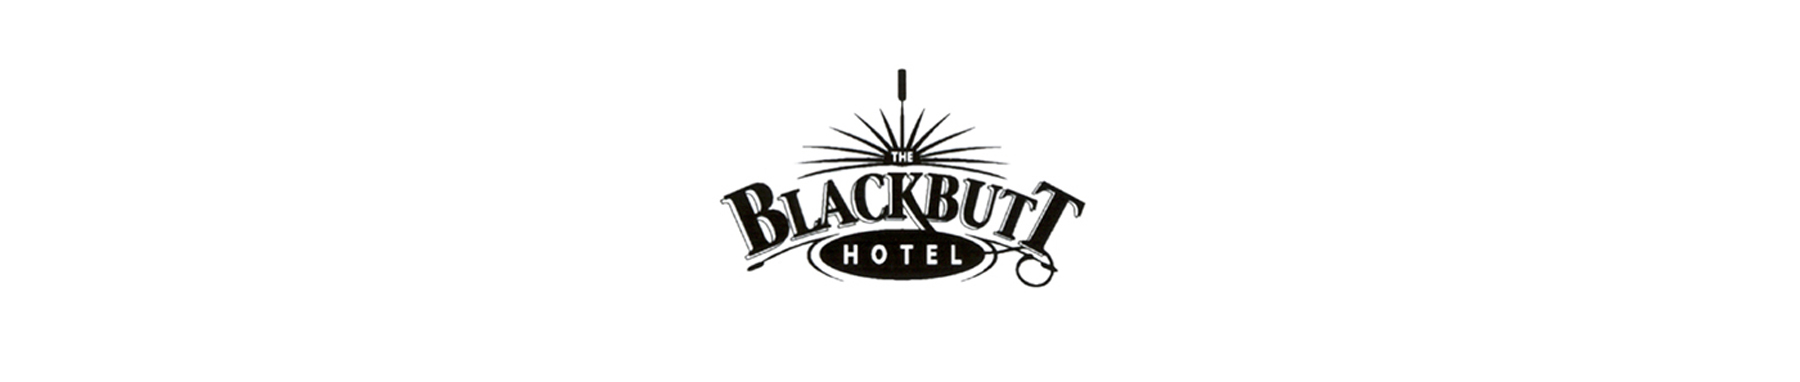 Blackbutt Hotel banner on white background